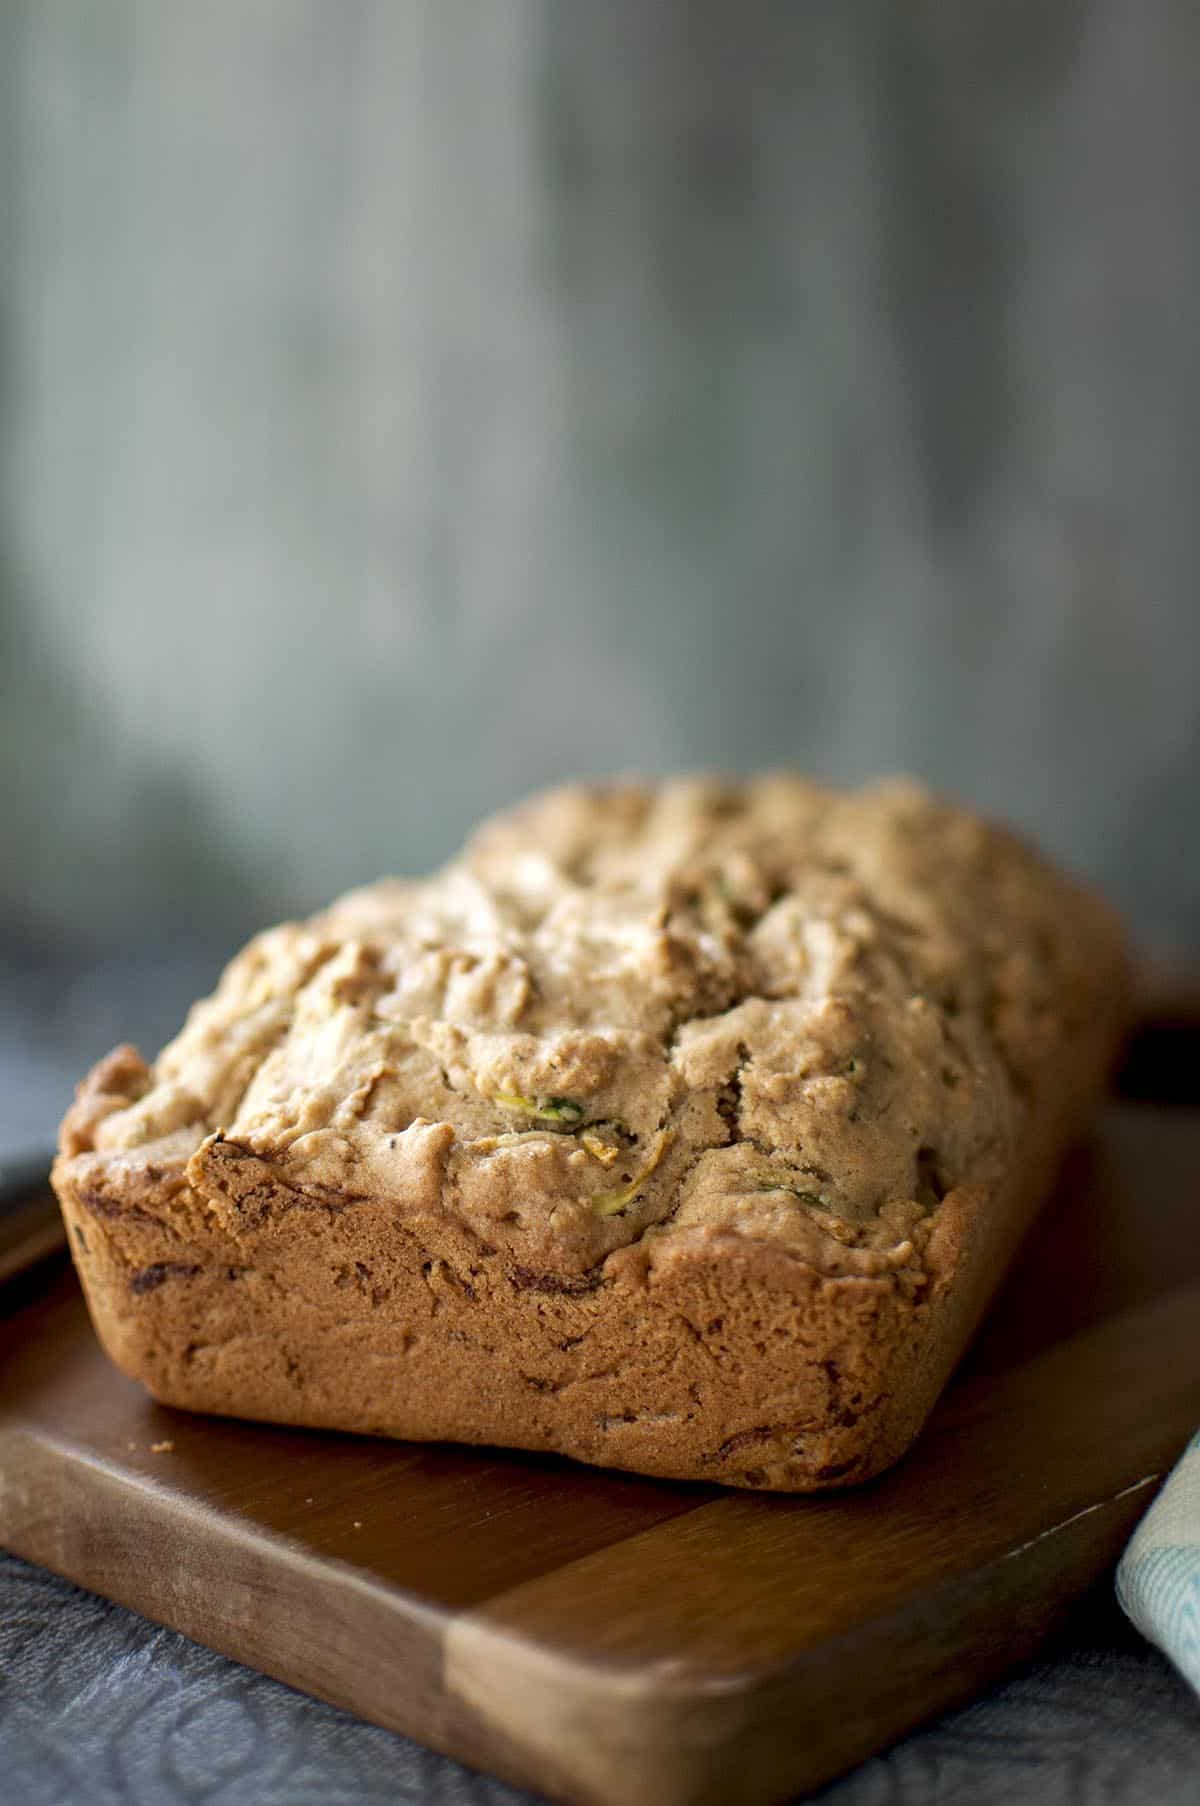 zucchini loaf placed on a chopped board